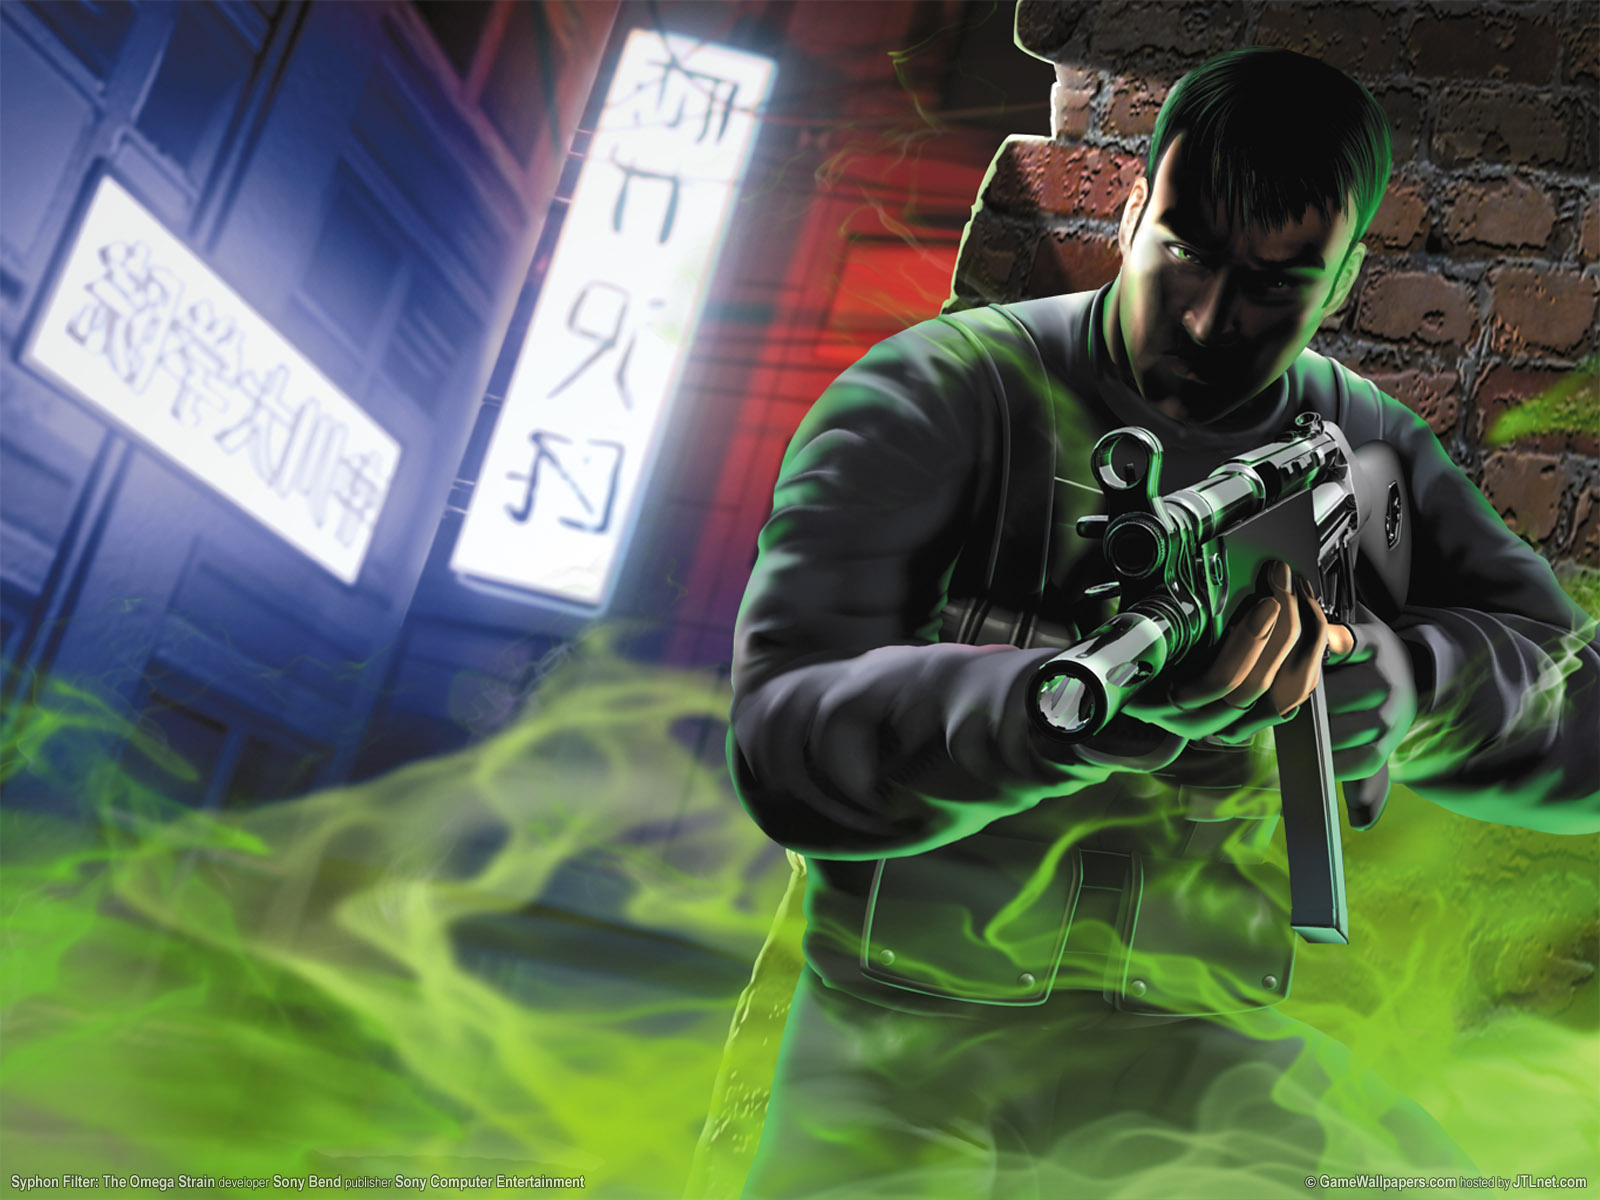 Syphon Filter: Omega Strain wallpapers | Syphon Filter